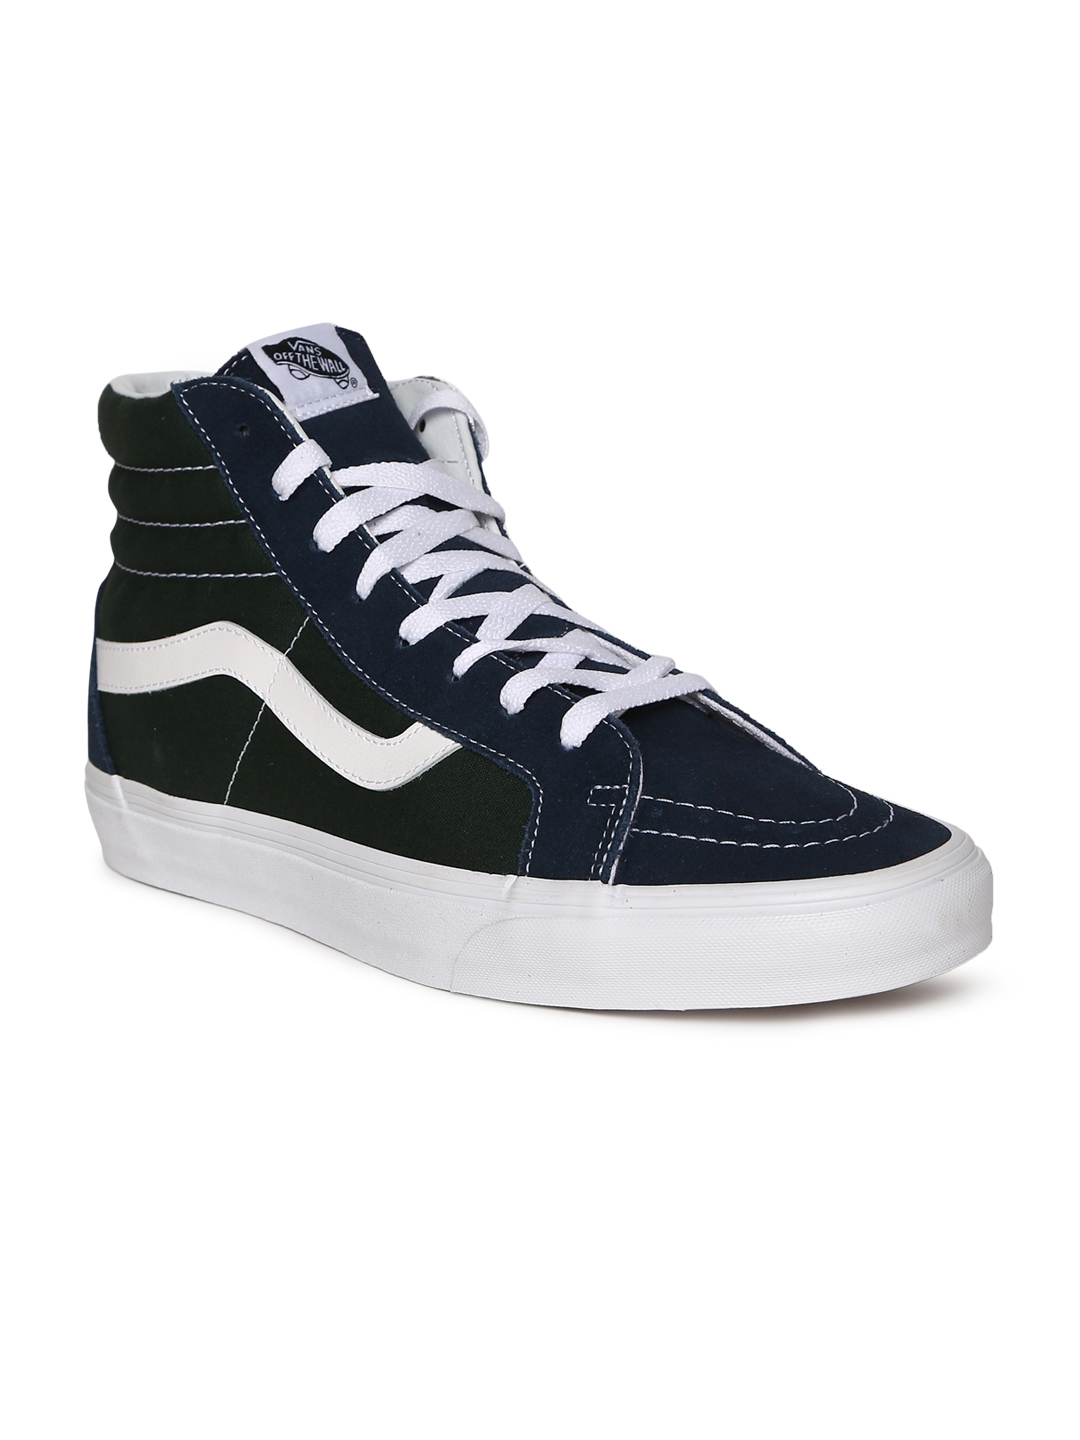 ce34179486 Vans Unisex Navy Blue Solid Synthetic SK8-Hi Reissue High-Top Sneakers